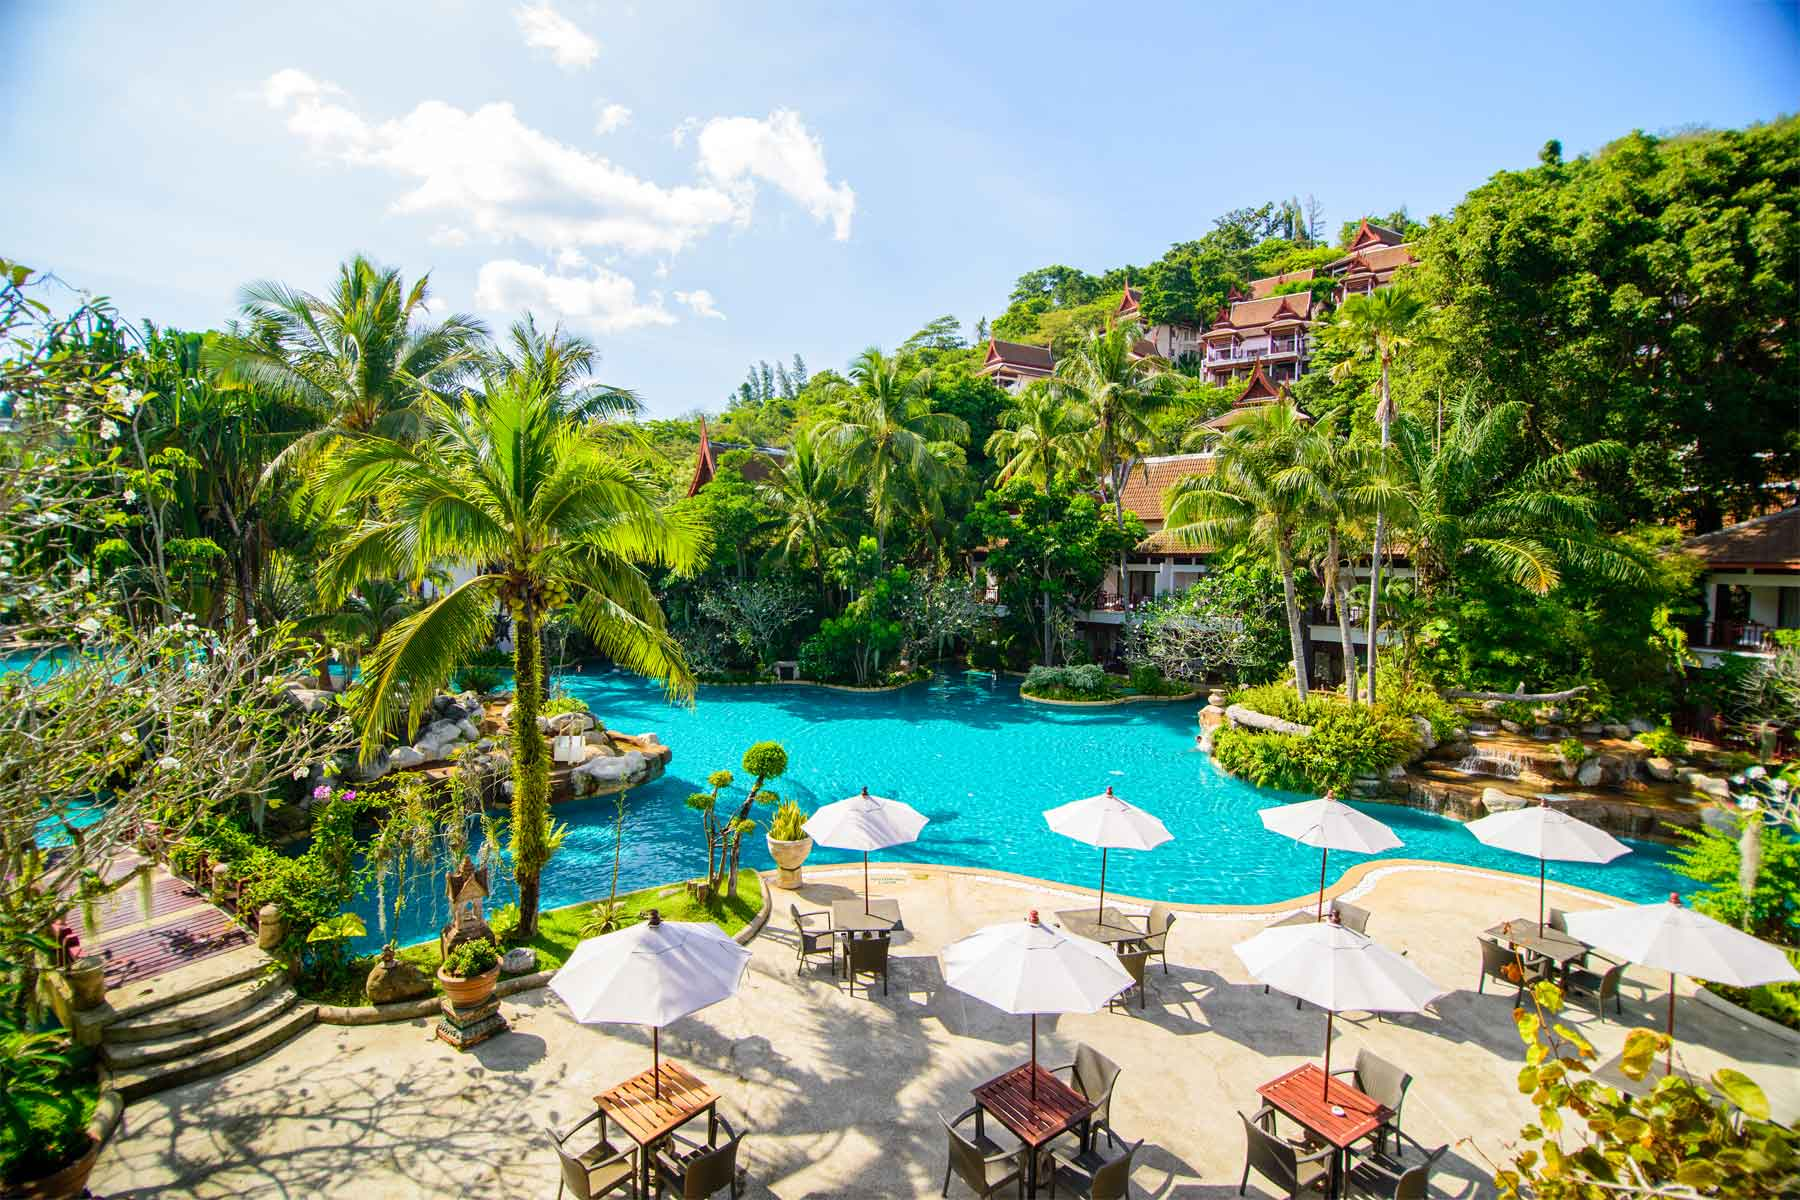 Thavorn Beach Village Resort Spa Et Refresh Recharge And Relax